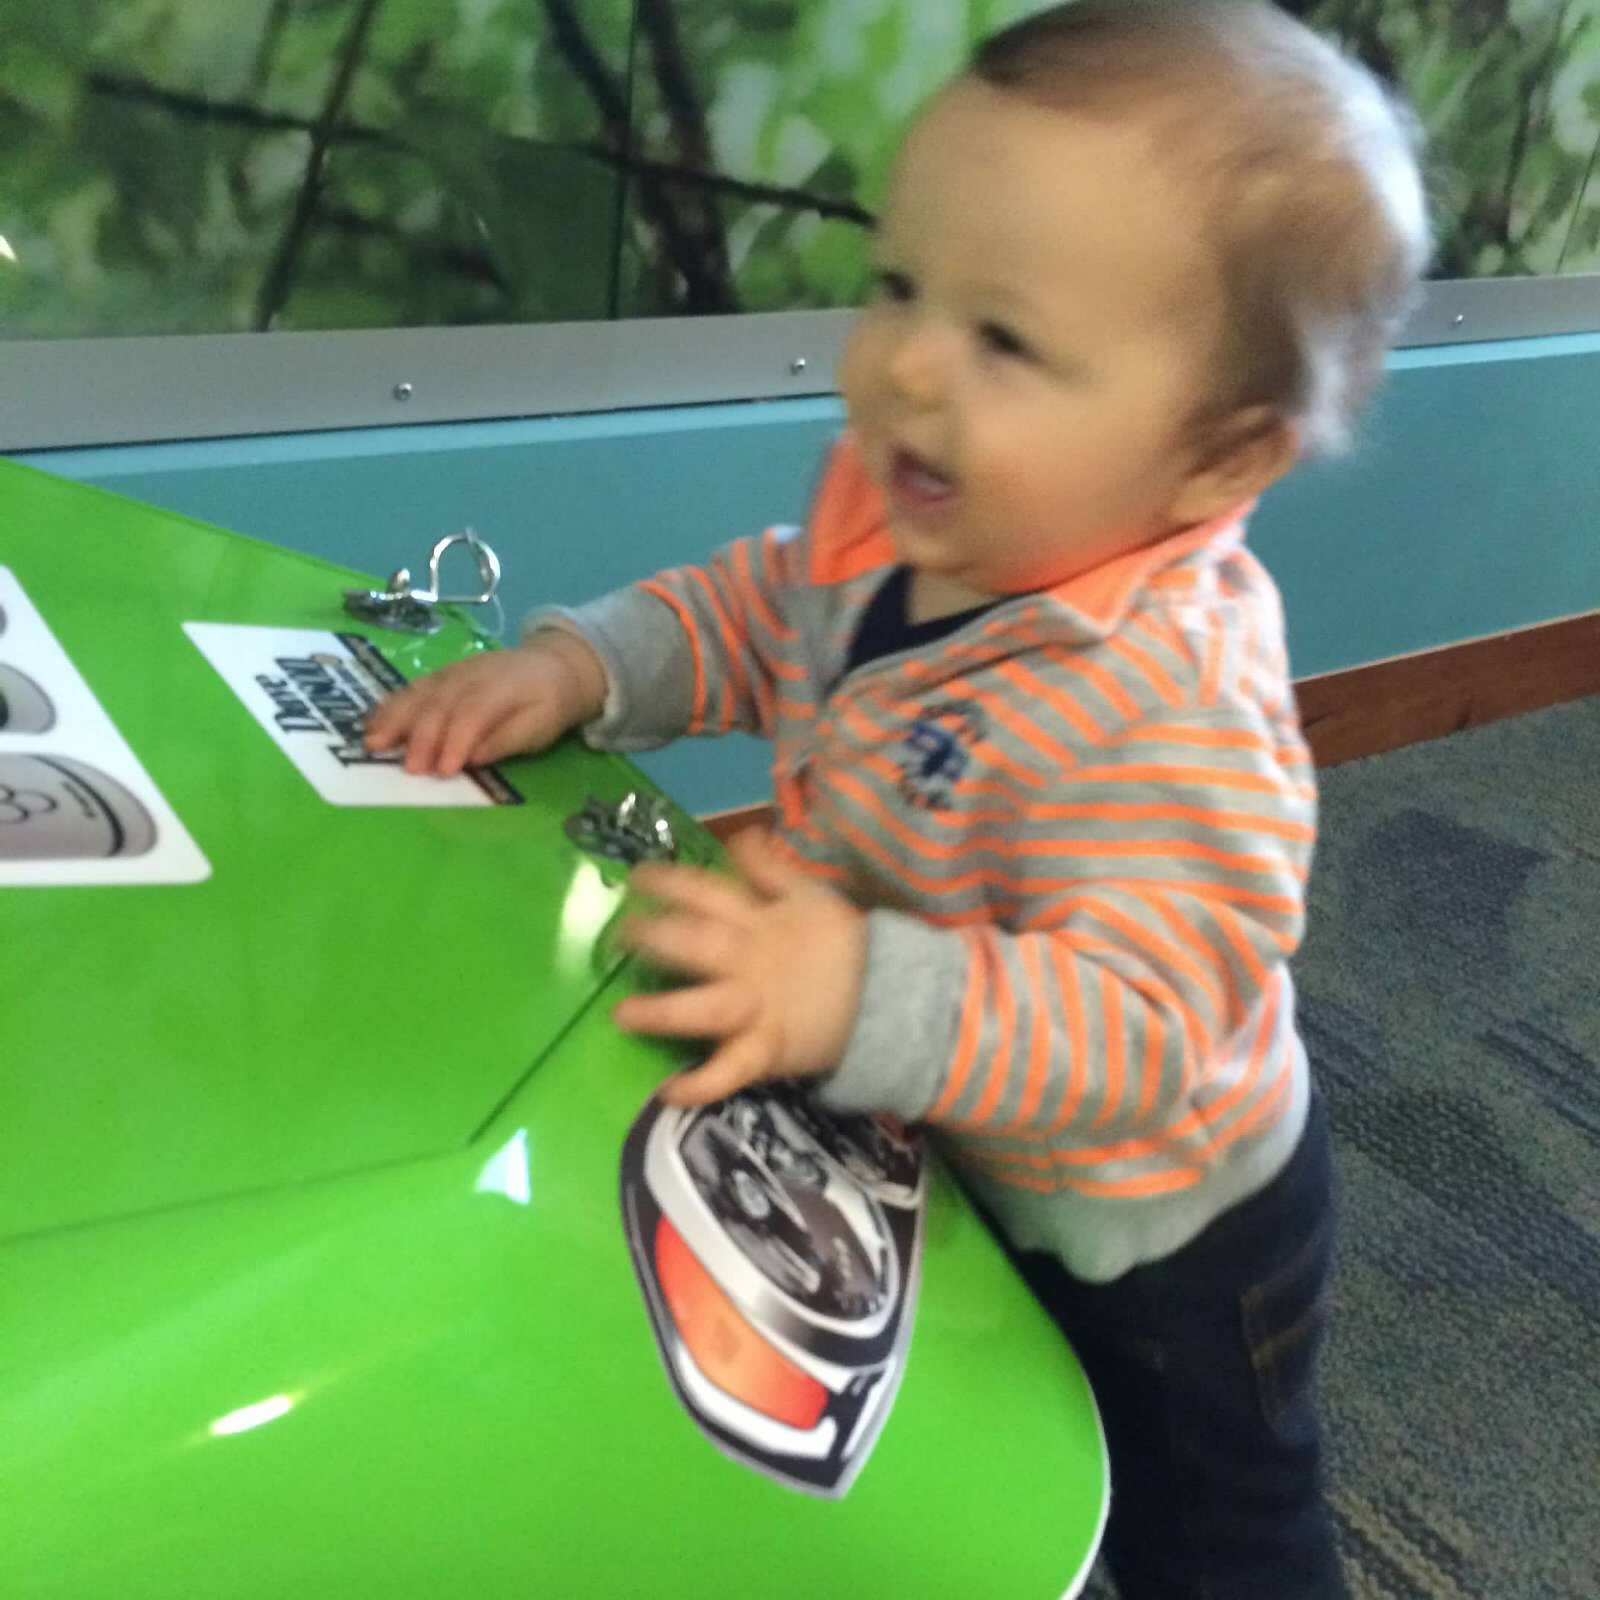 Luka's favorite toy at the clinic, the race car